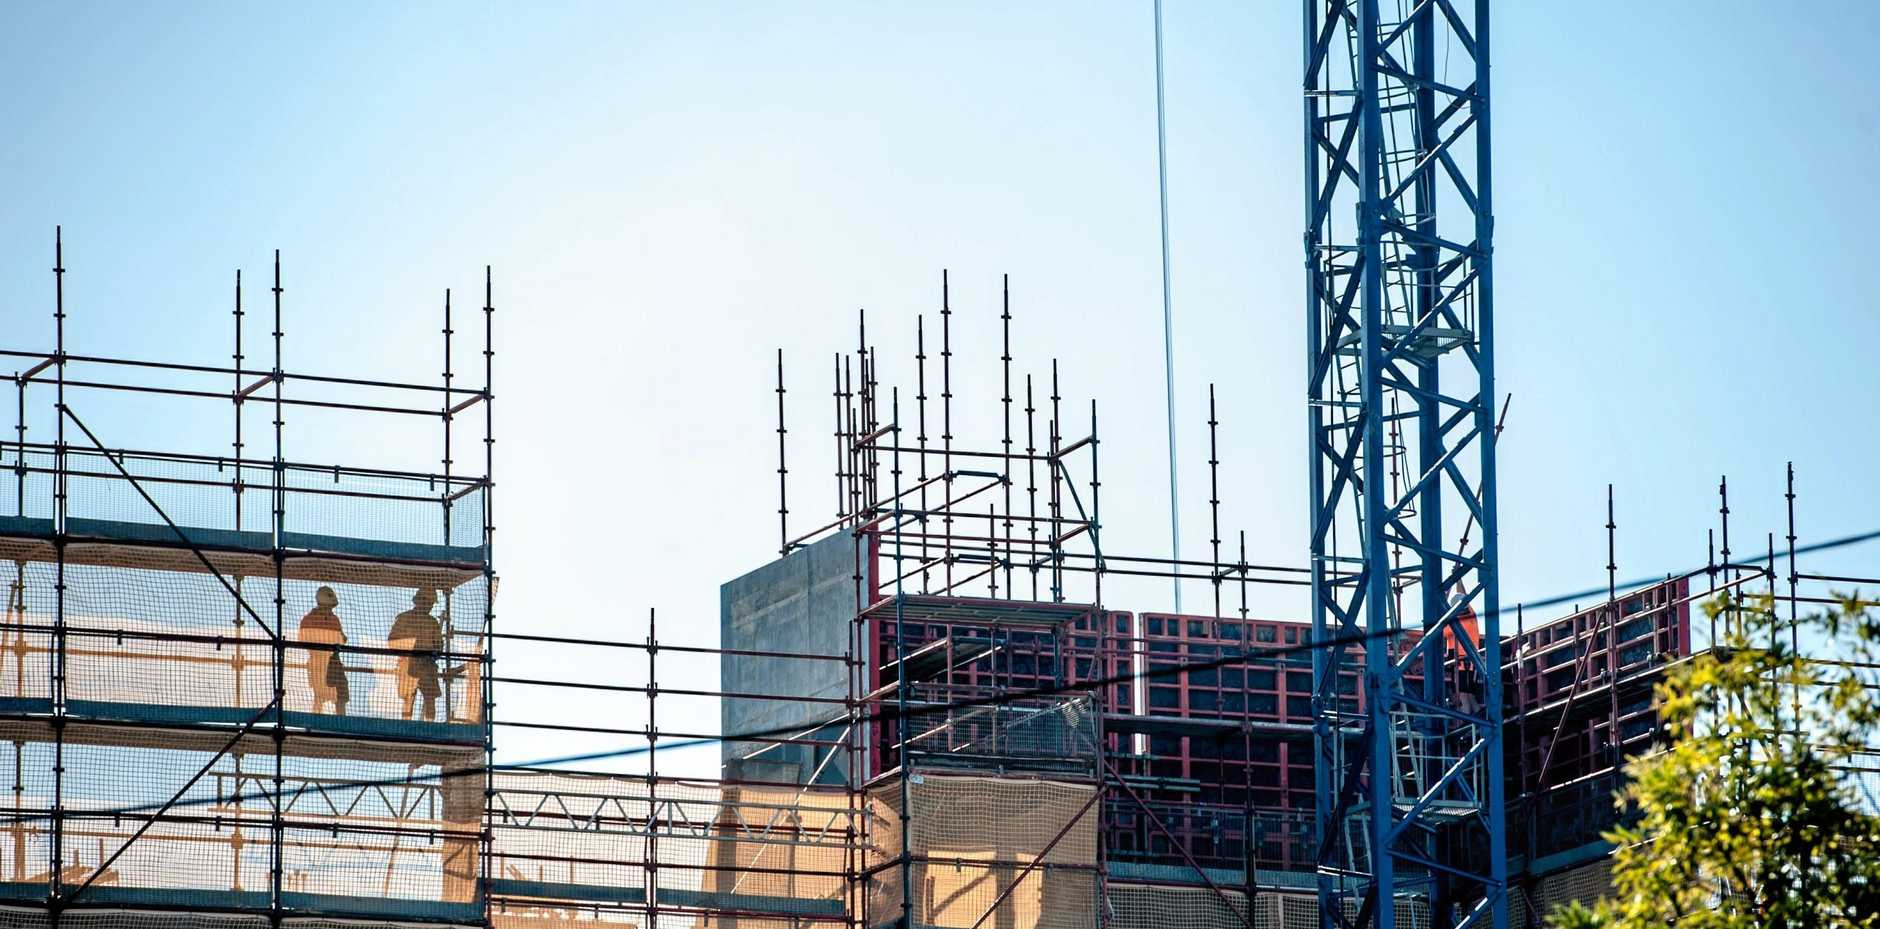 HIGHER YET: Building height limits in Coffs Harbour could be raised from 17m to 44m.